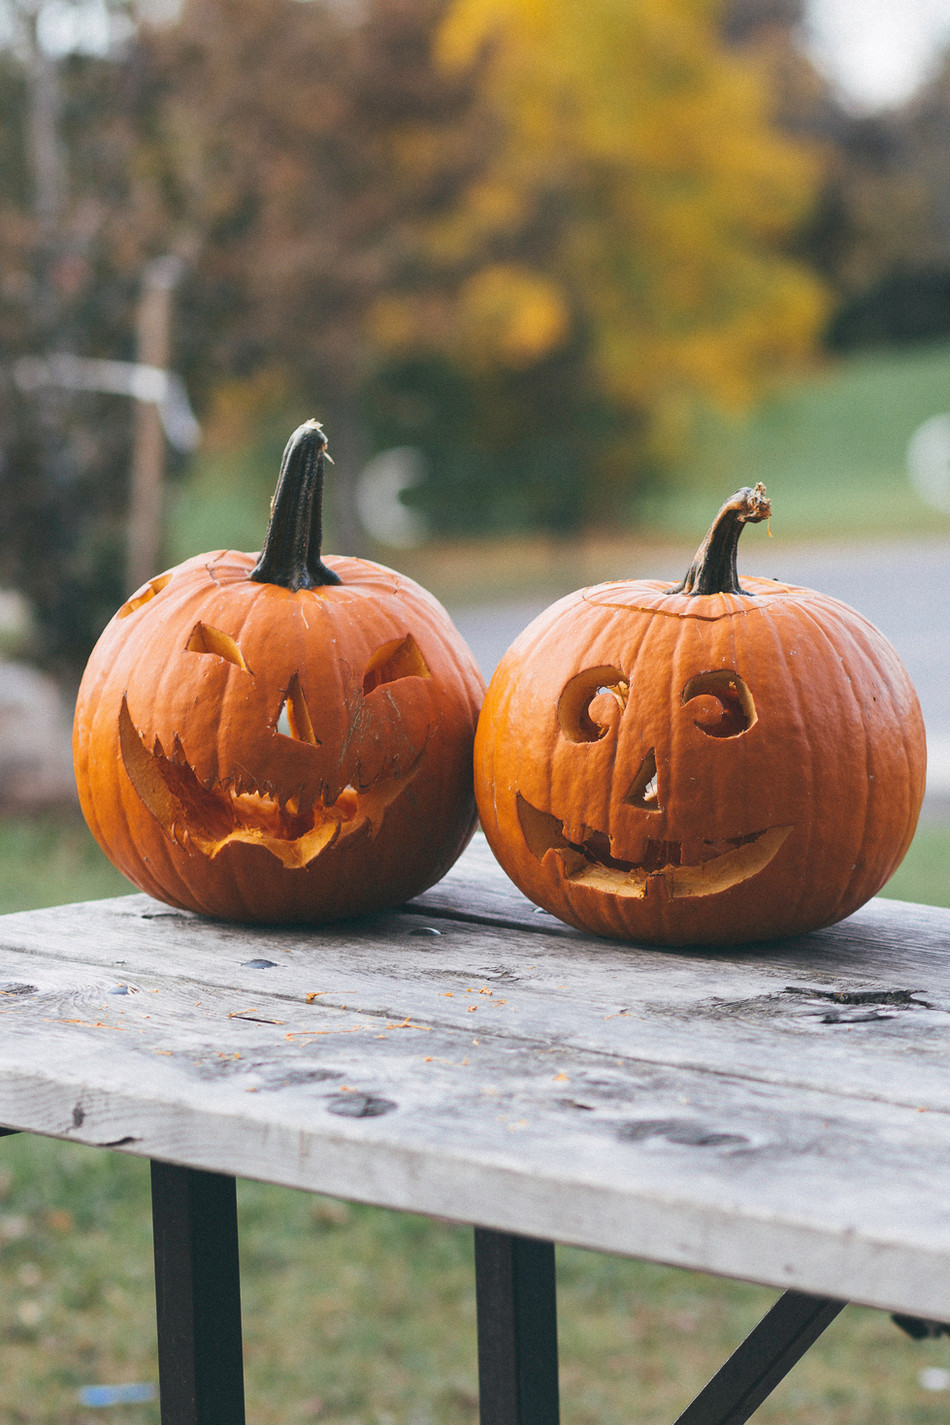 CÔTE D'OPALE AND THE HALLOWEEN BREXIT EXPRESS